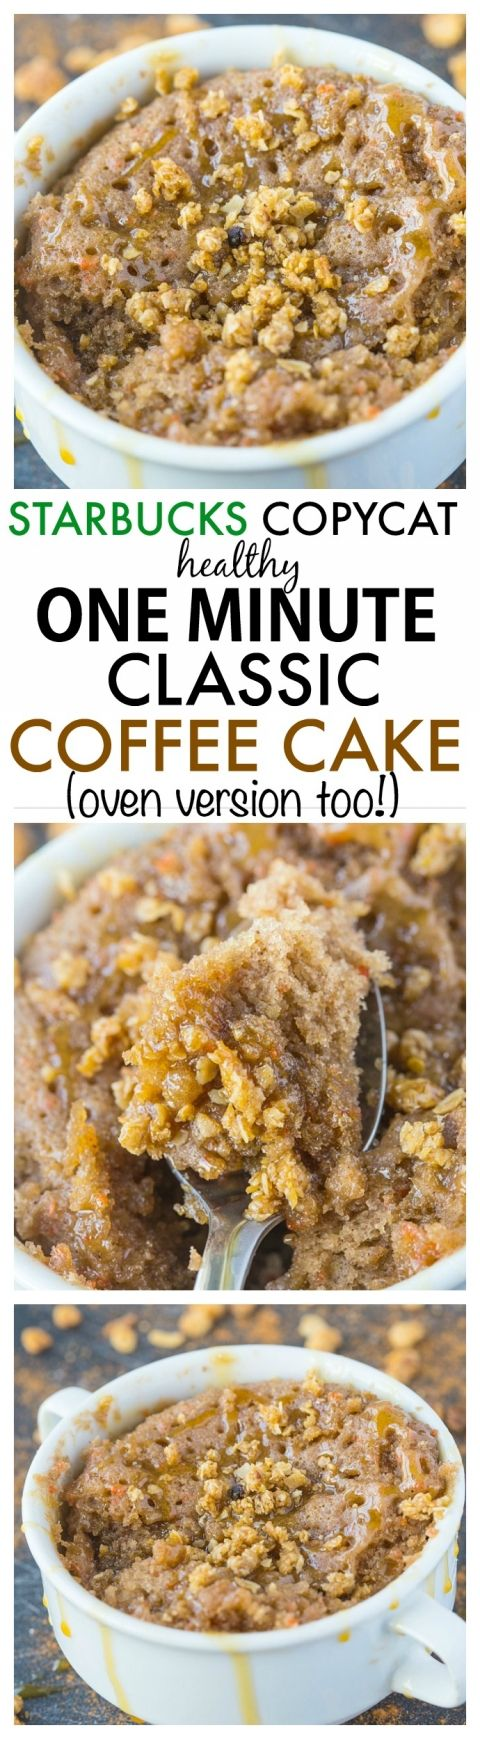 Healthy 1 Minute Classic Coffee Cake- Inspired by Starbucks, this healthy cake recipe is moist, fluffy and SO delicious- There's no oil, butter or added sugar AND it only takes one minute- Oven option too! {vegan, gluten free, paleo}